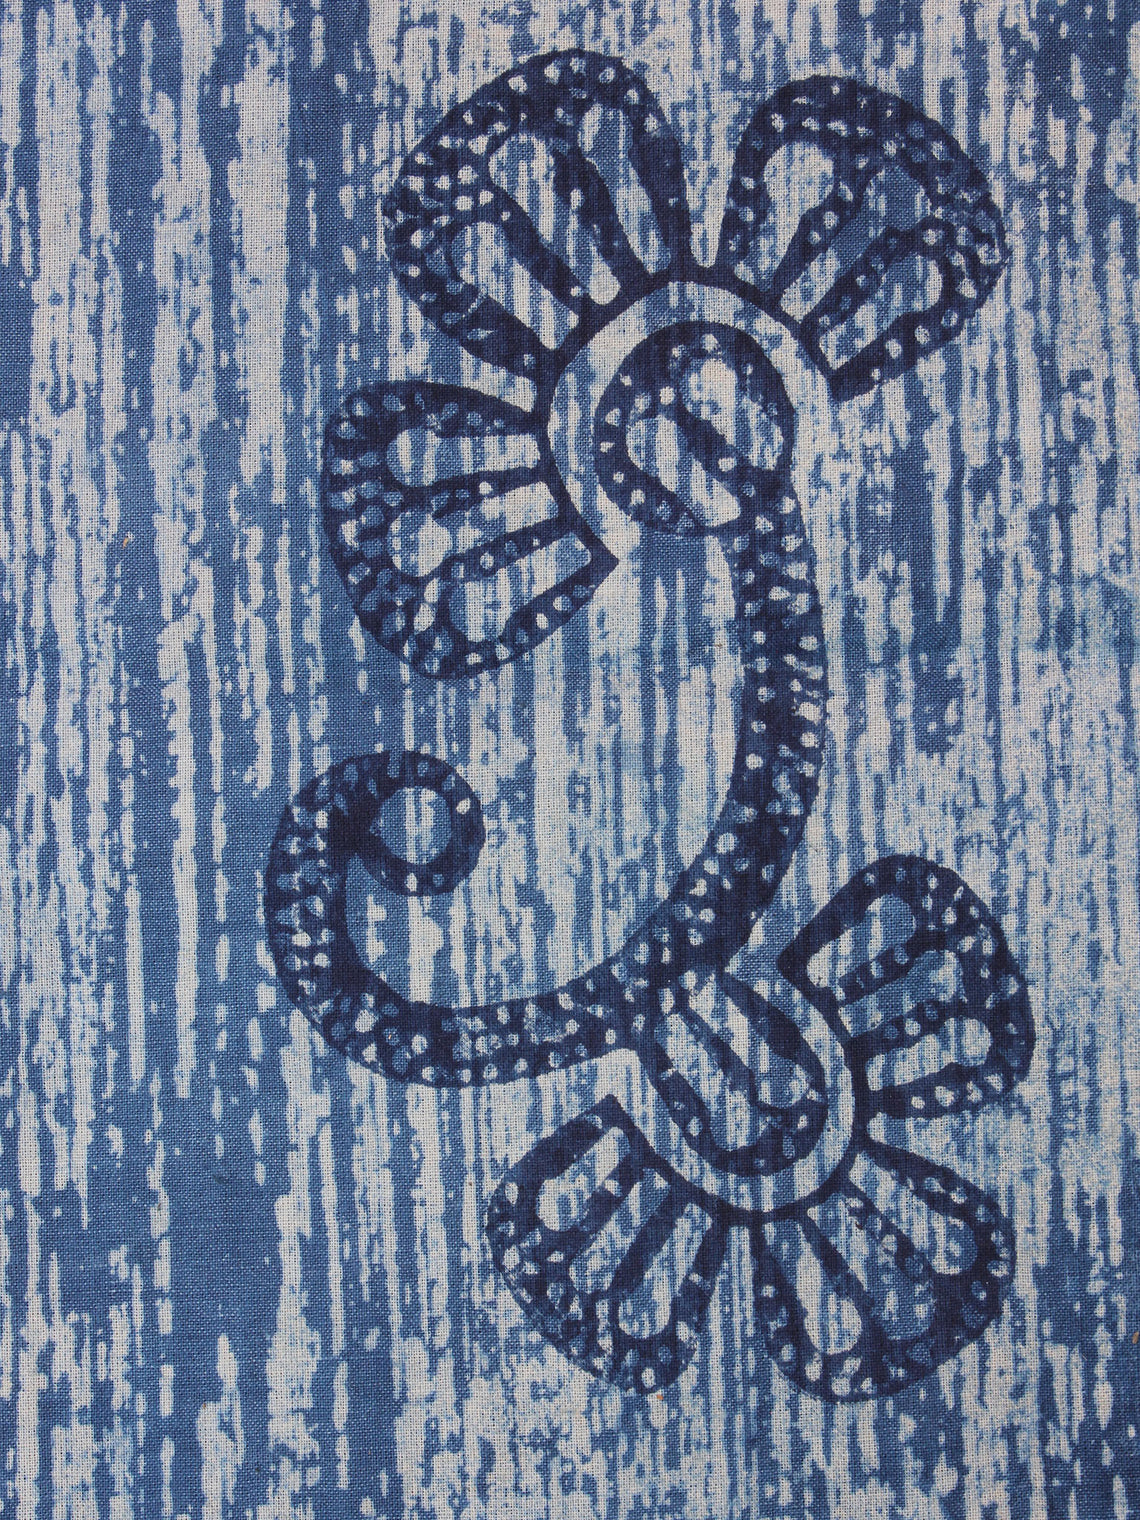 Indigo Blue Natural Dyed Hand Block Printed Cotton Fabric Per Meter - F0916300